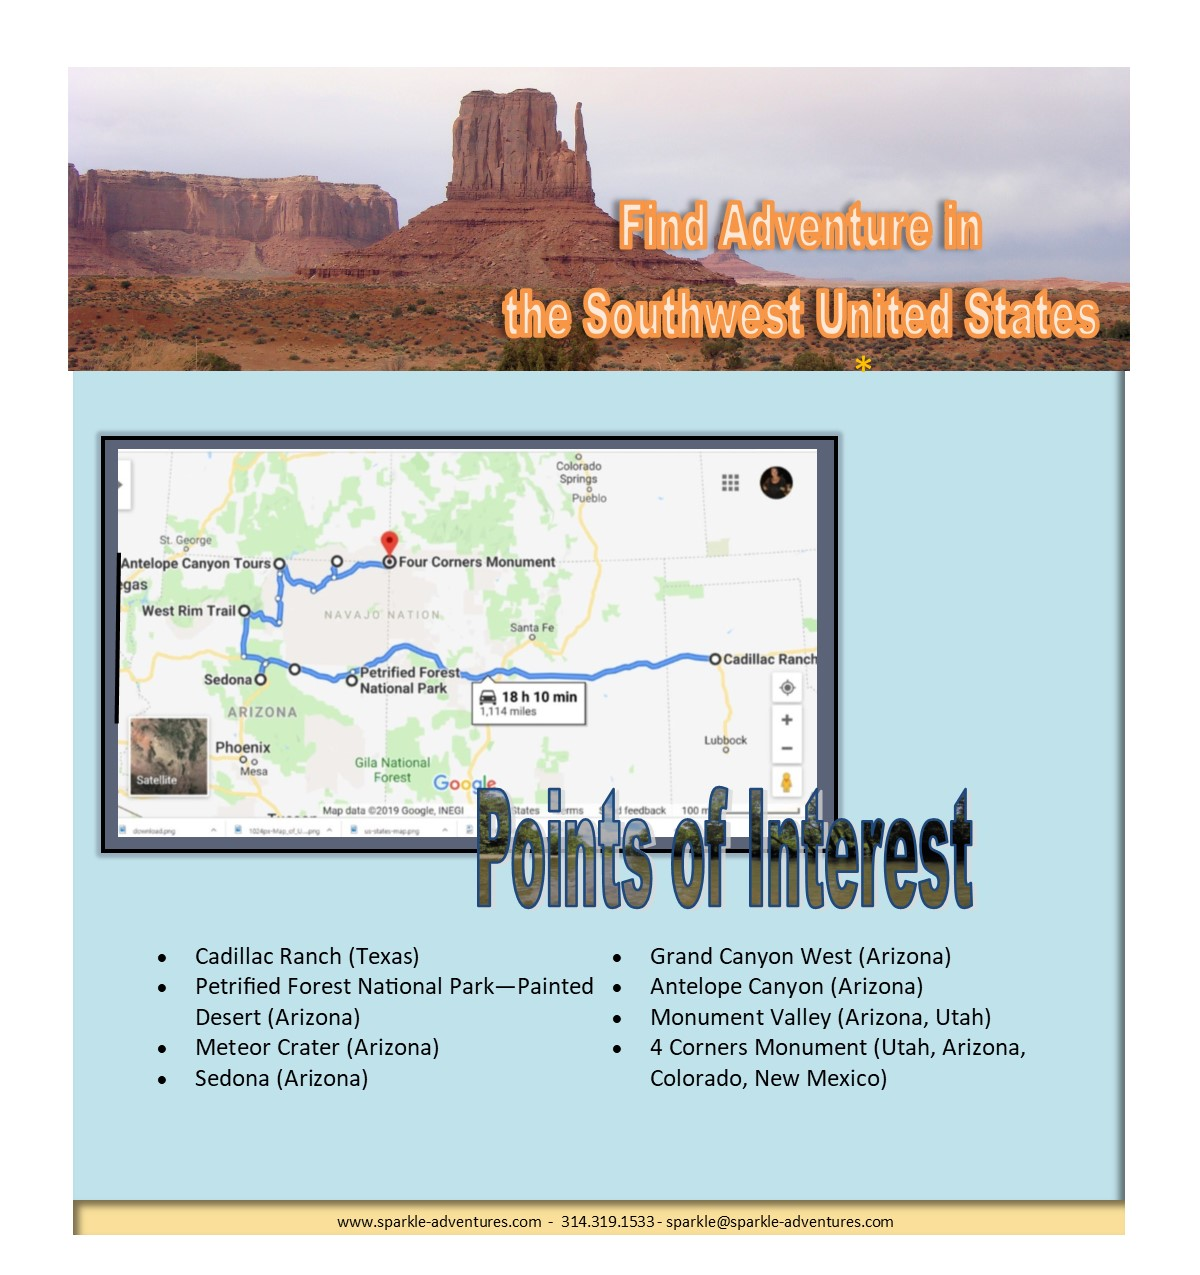 Find Adventure in the Southwest United States - Sparkle Adventures